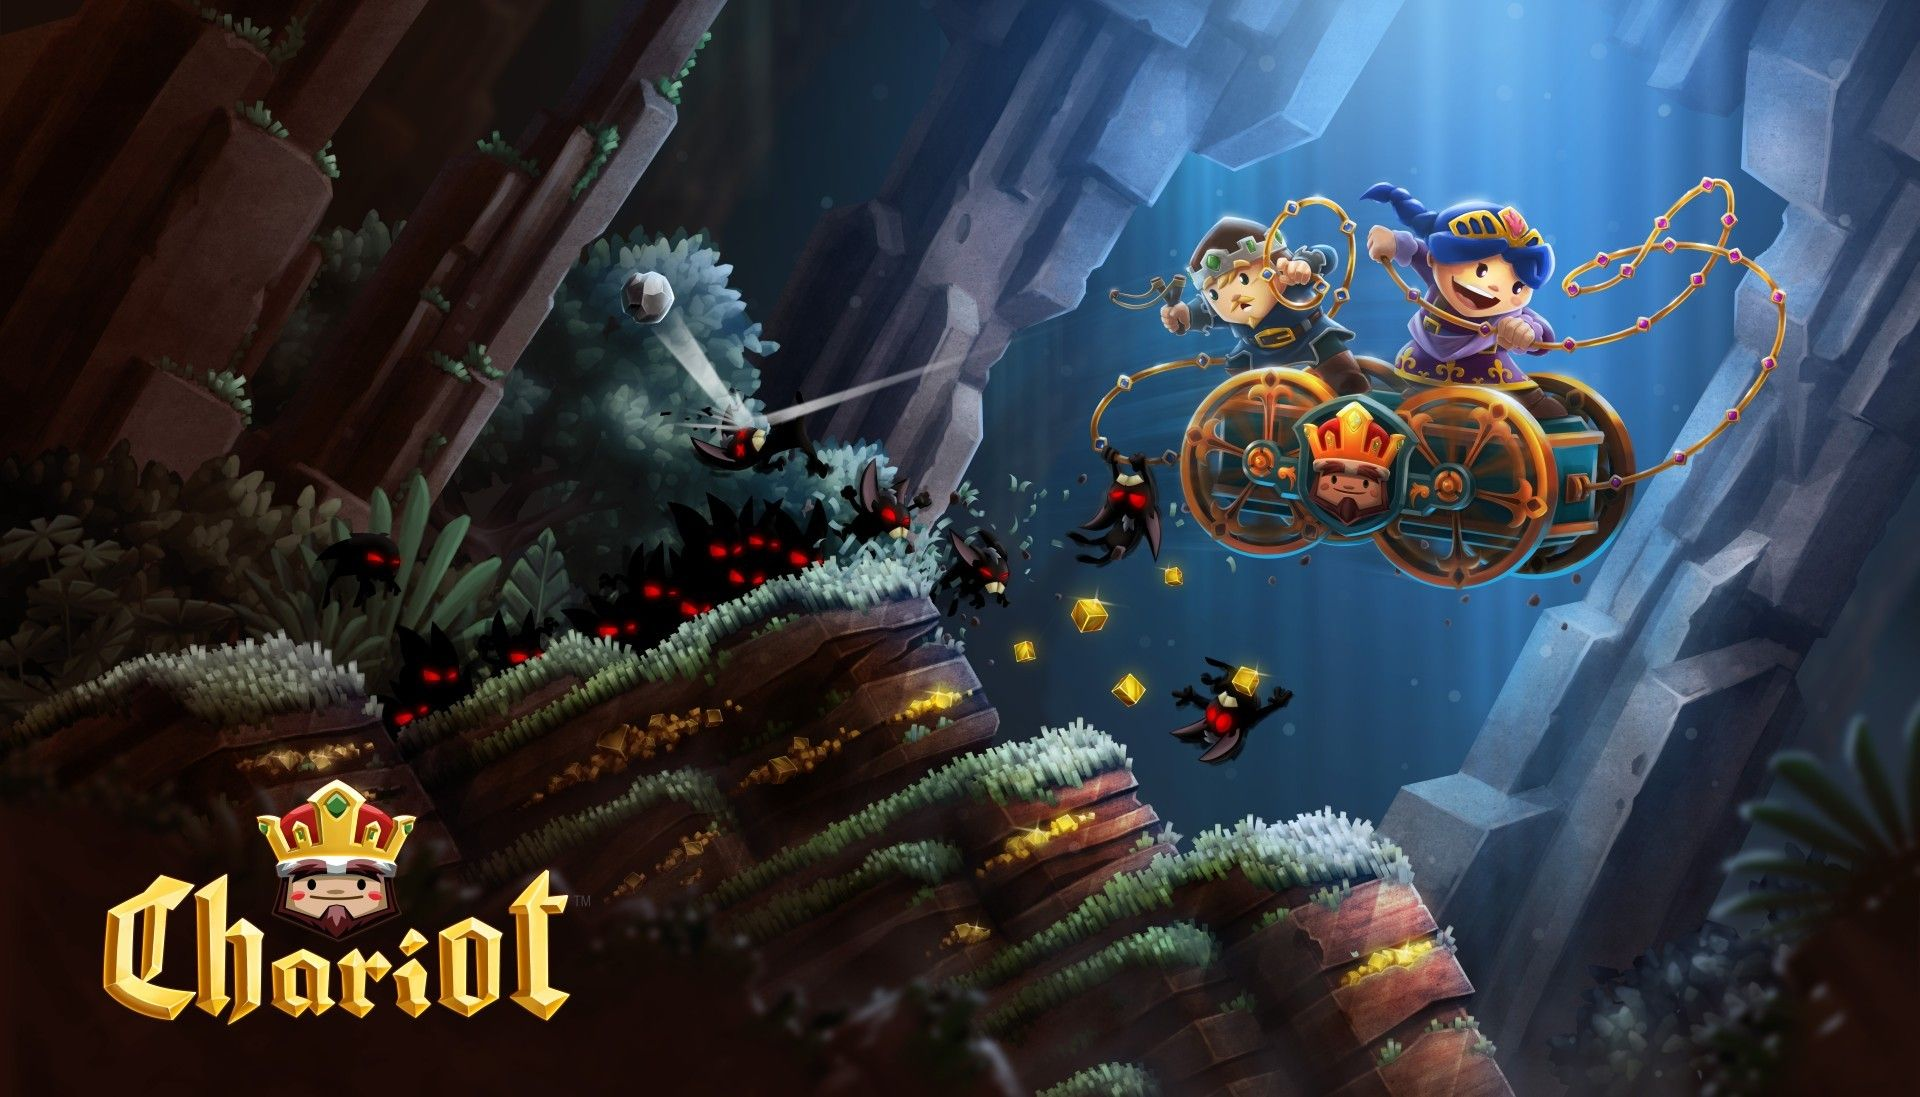 Chariot launch trailer Free xbox one, Xbox one, Indie games